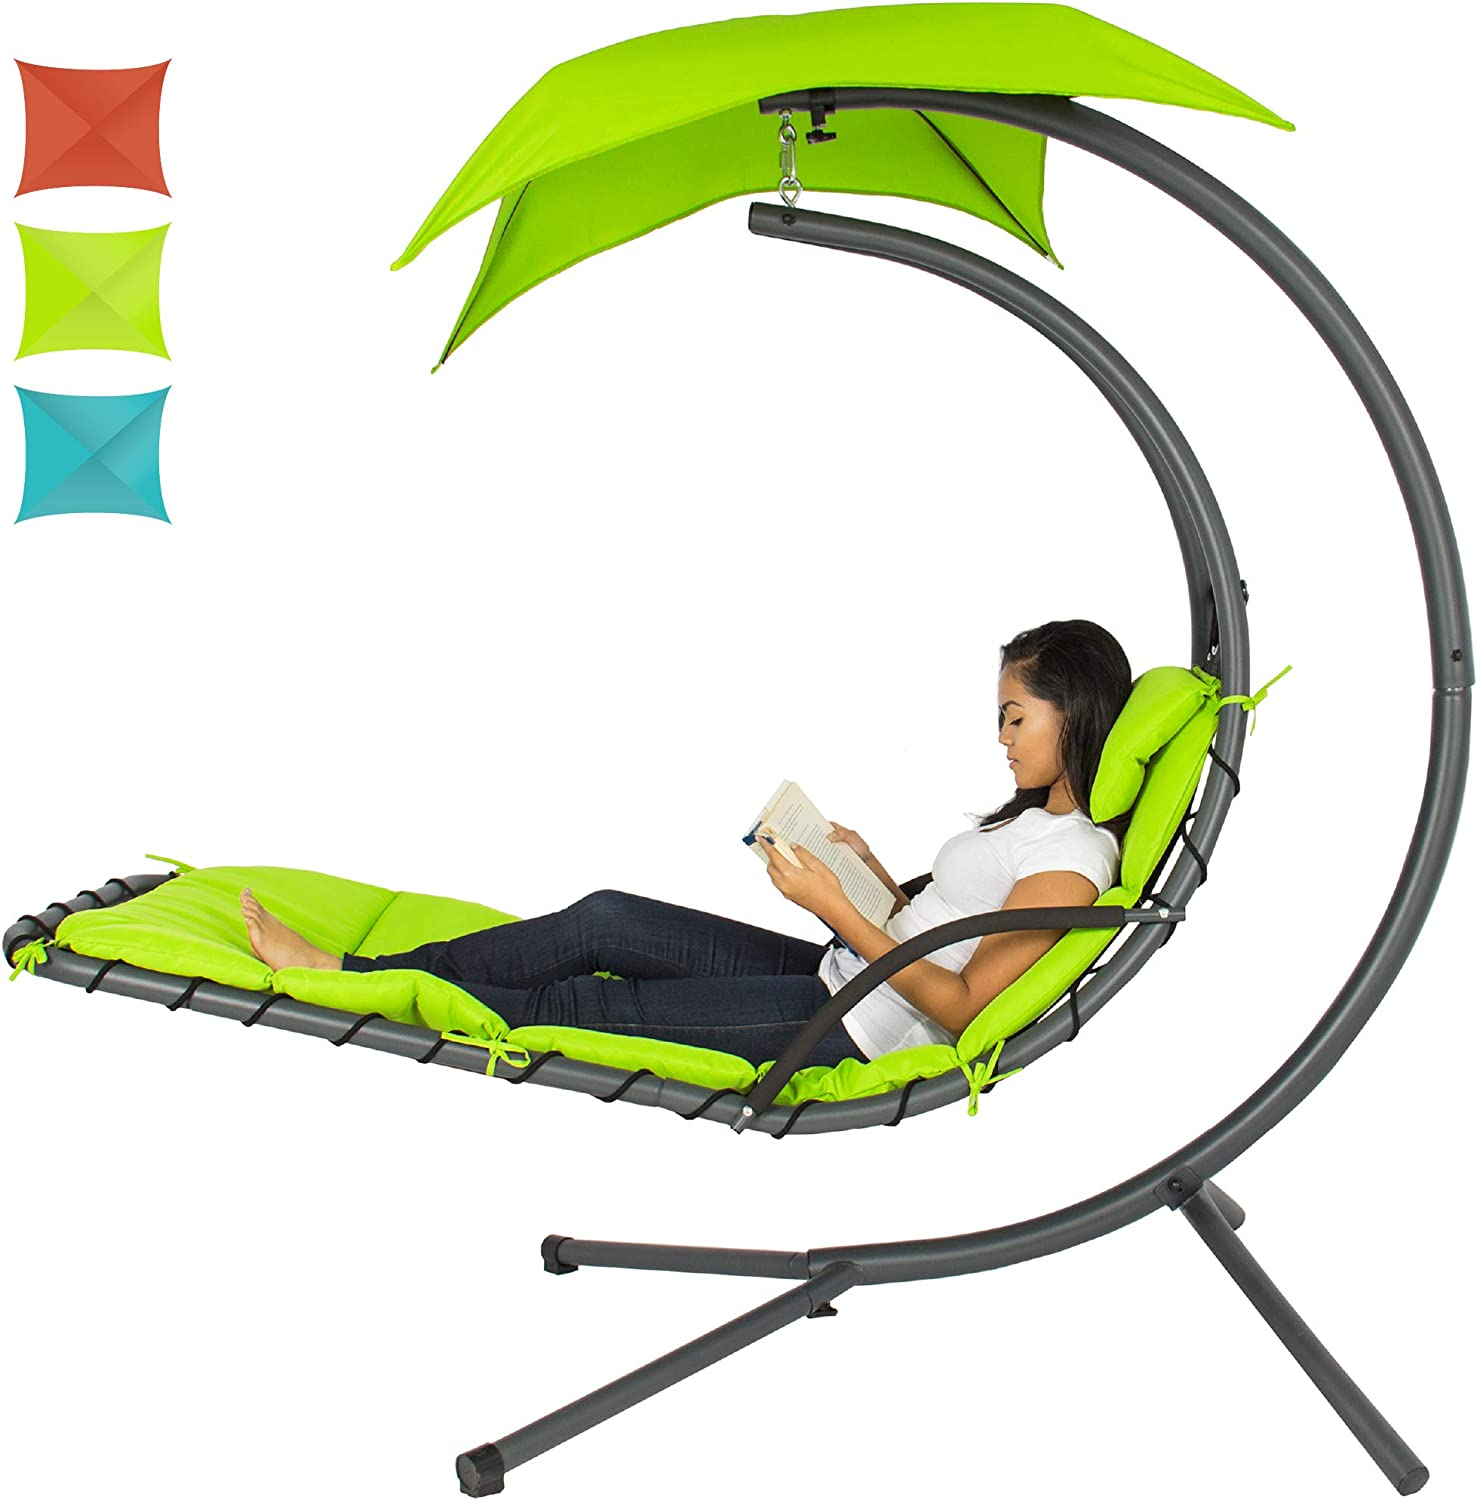 Best Choice Products Helicopter Swing Hammock Chair - Lime Green